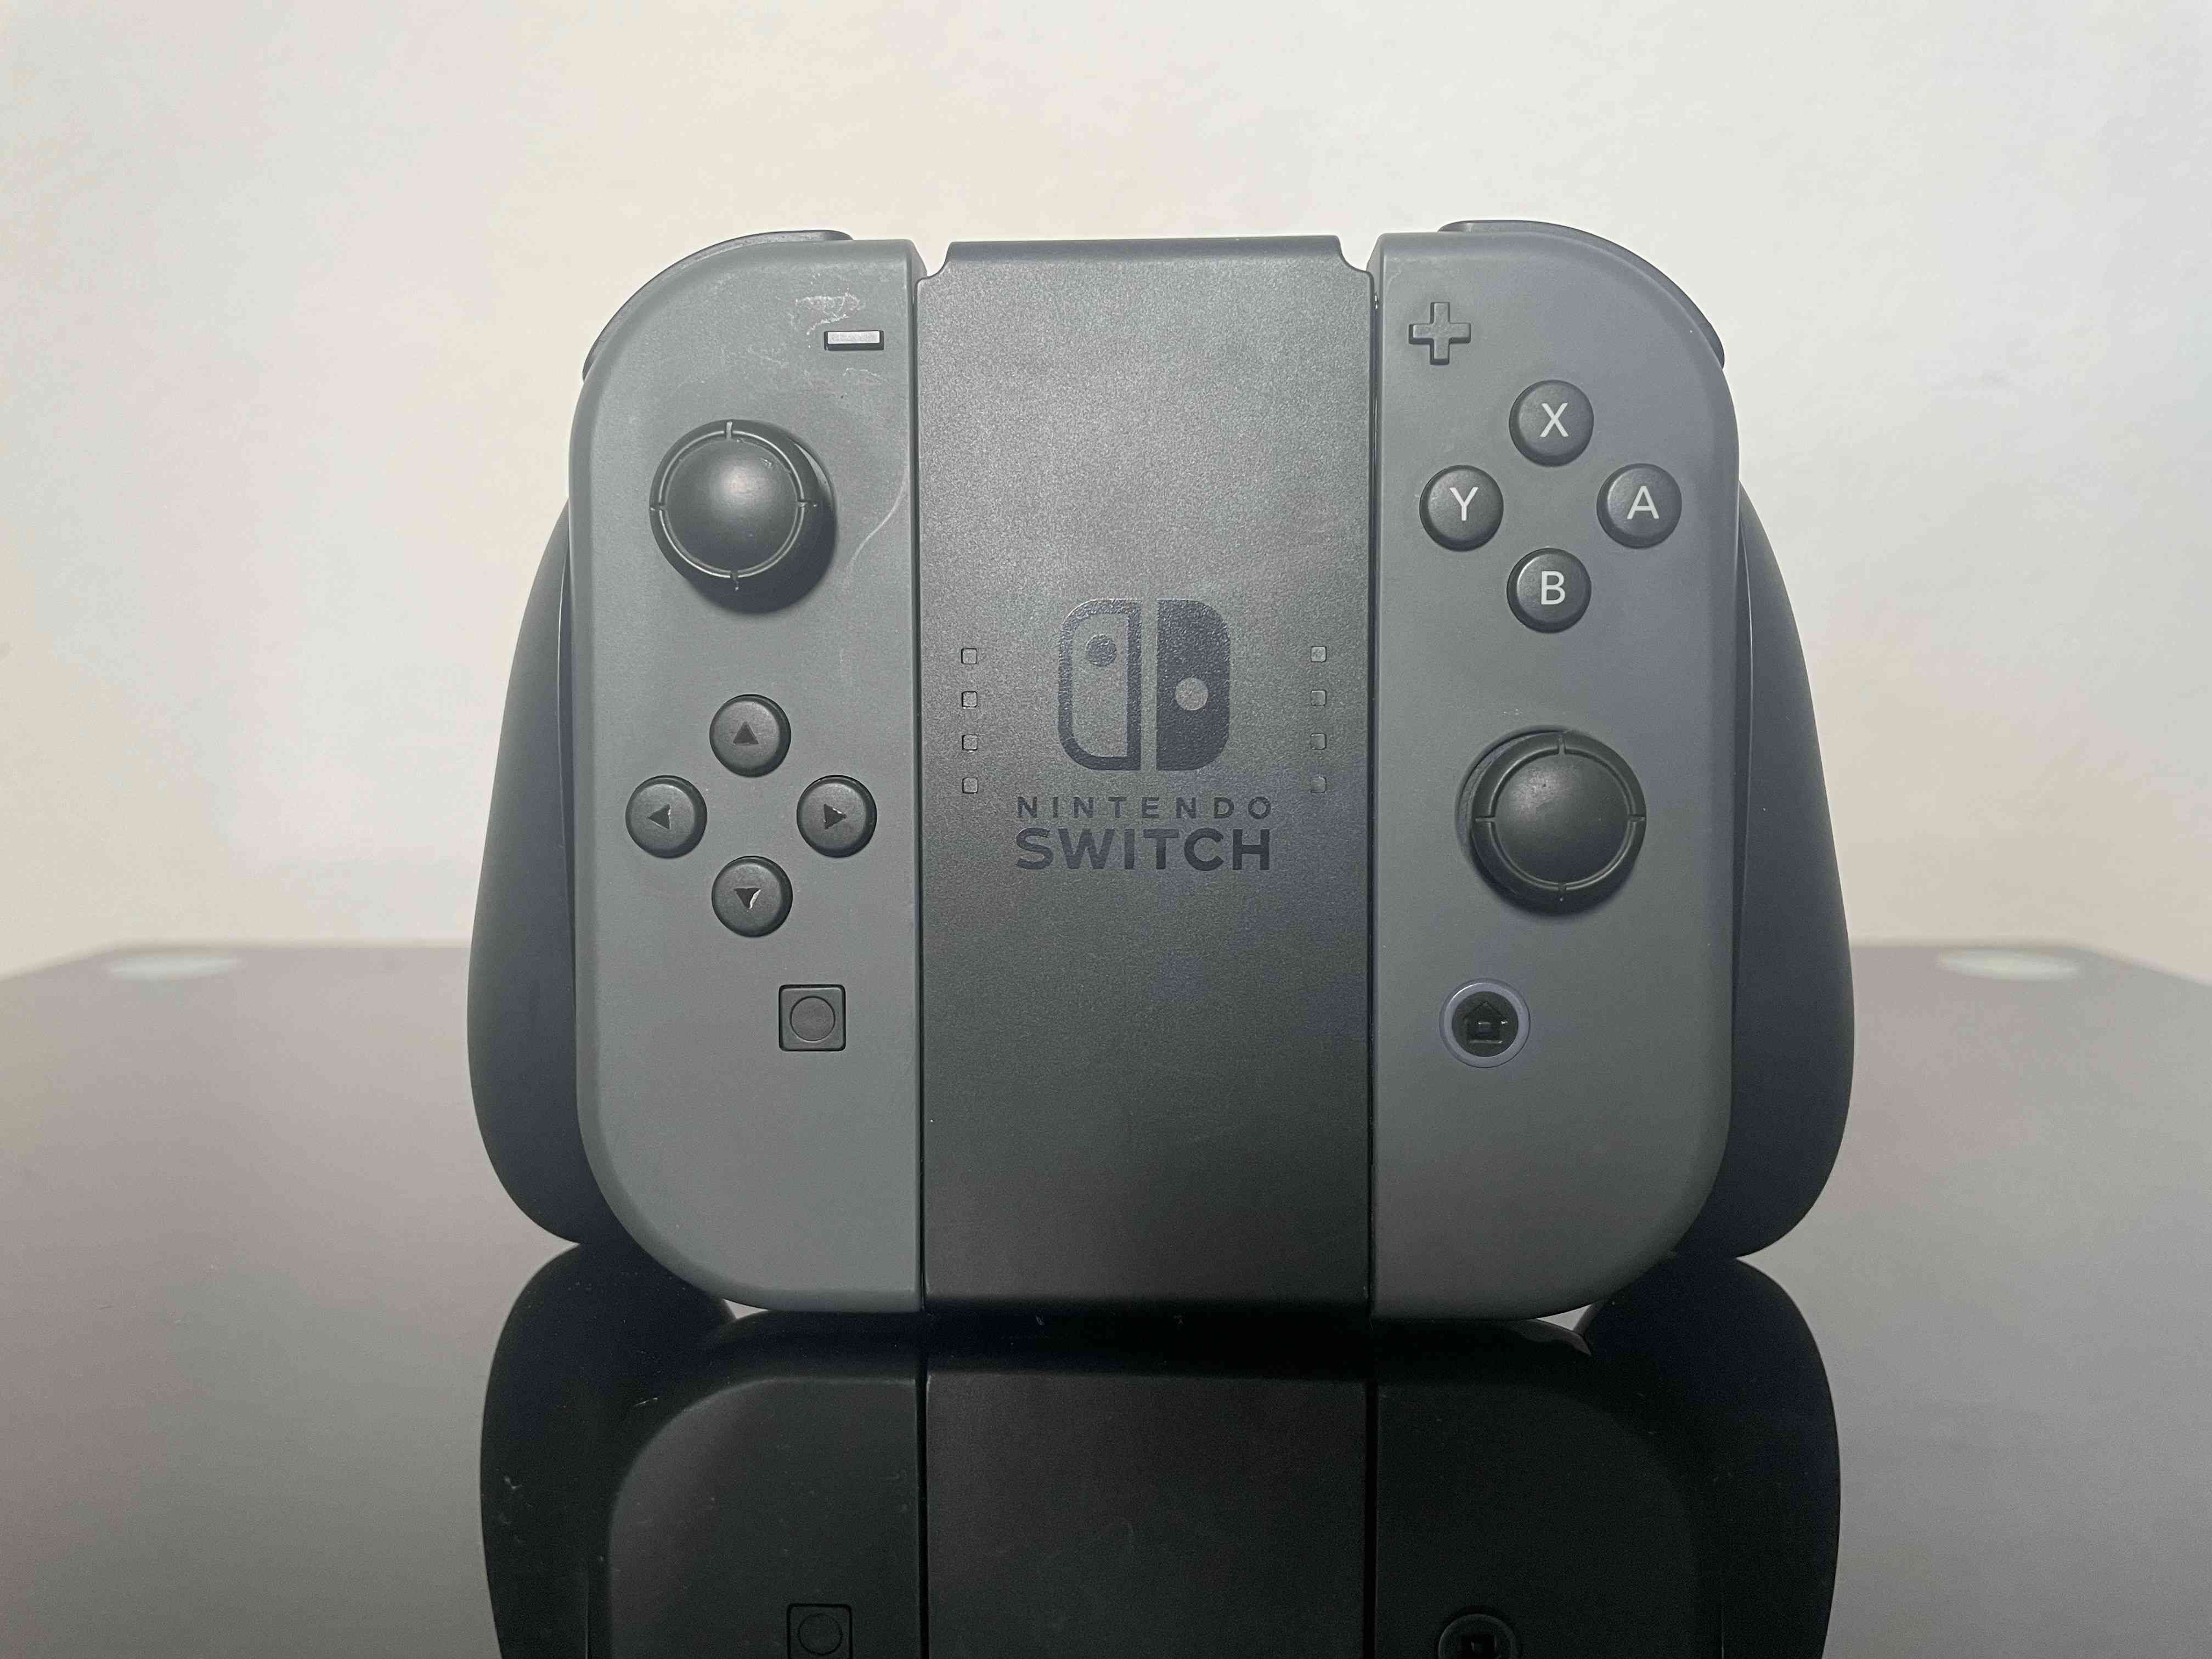 Switch controllers in the Joy-Con grip